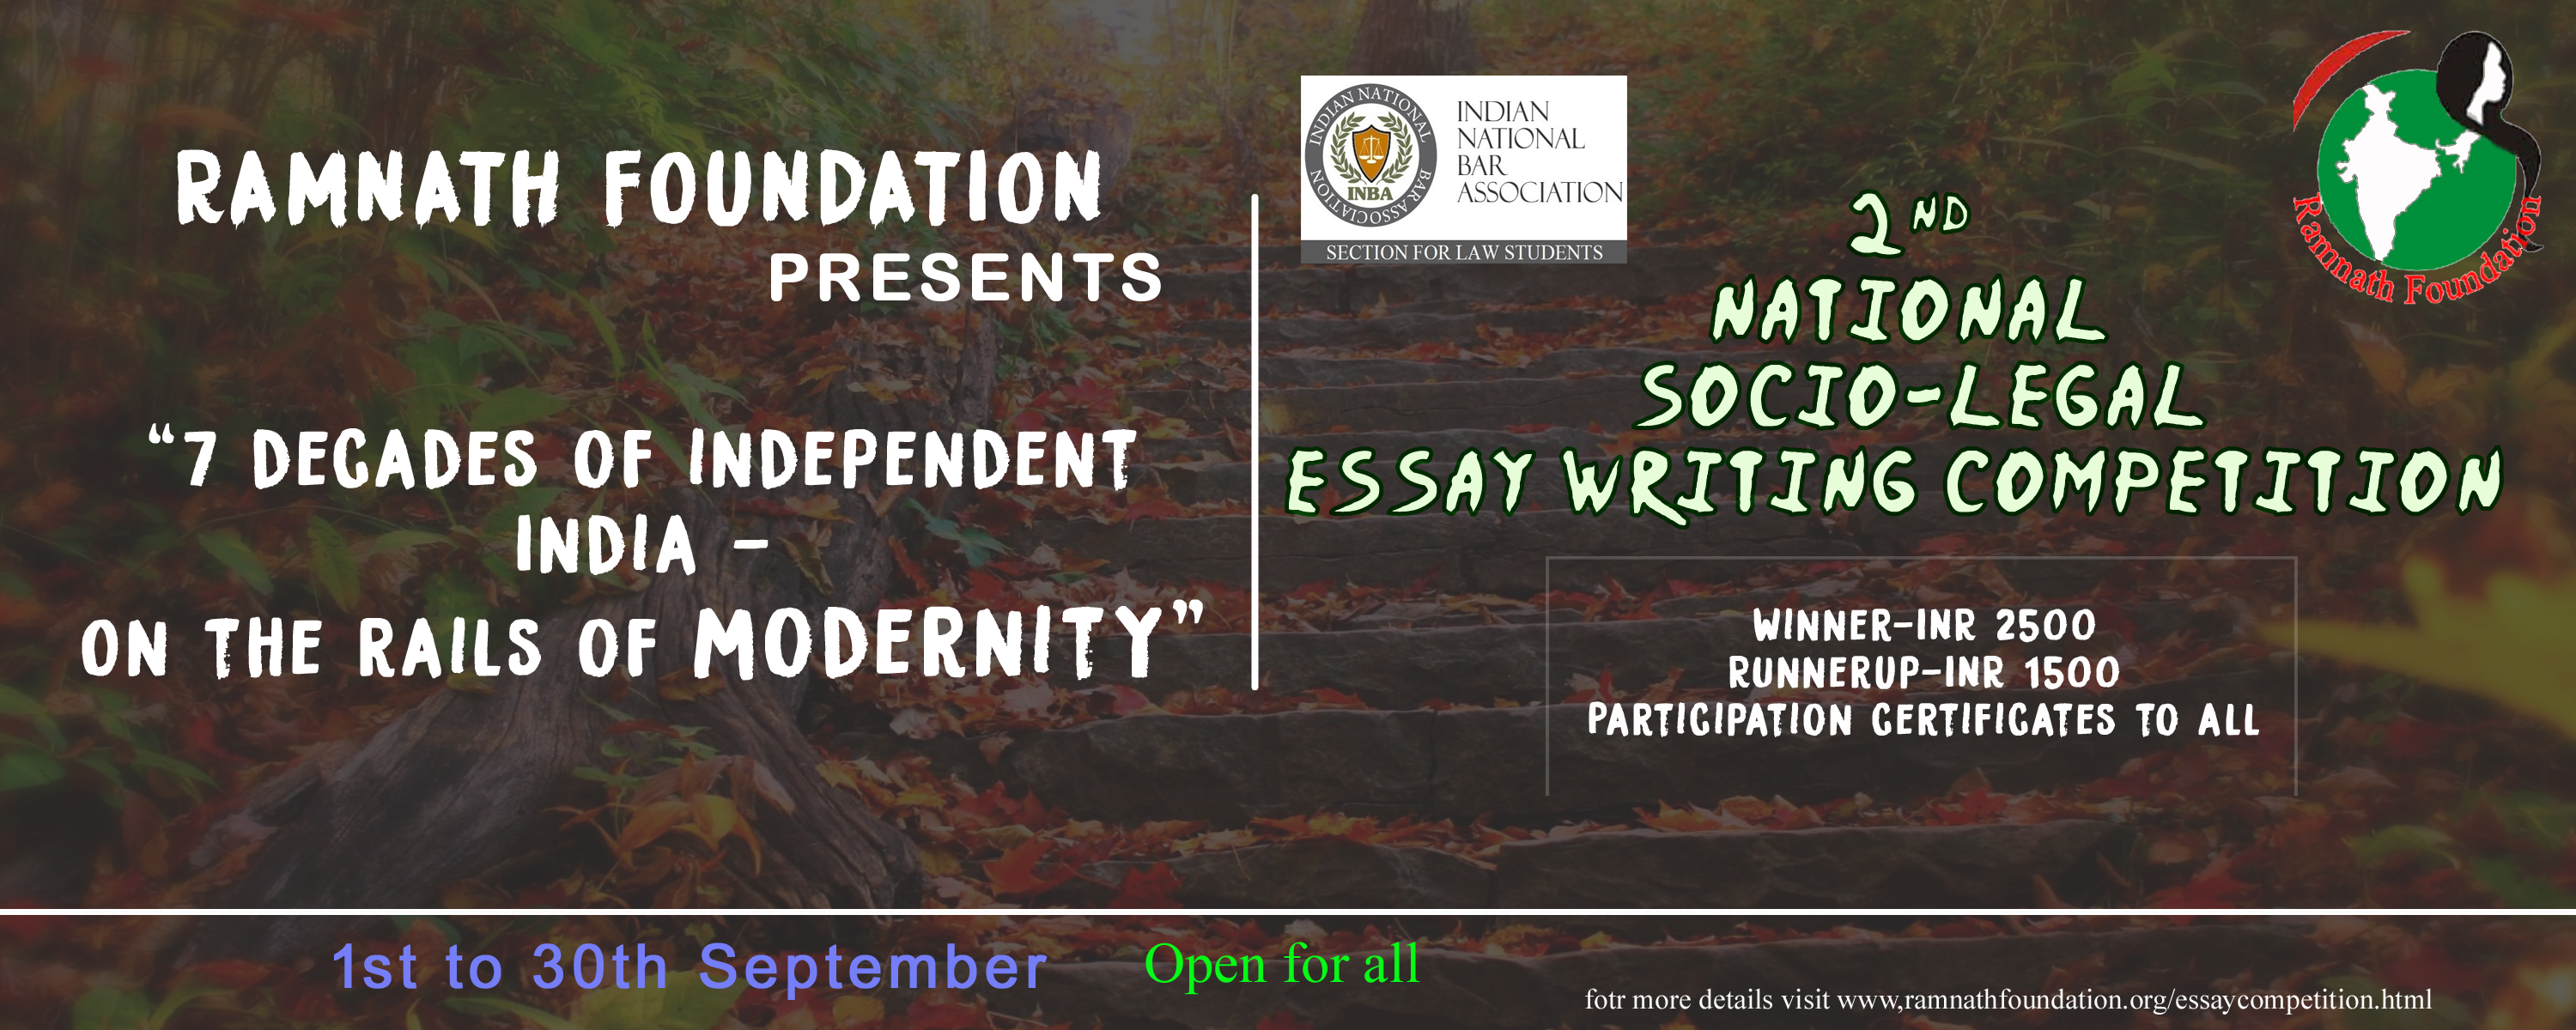 Ramnath Foundation National Socio-Legal Essay Competition 2016